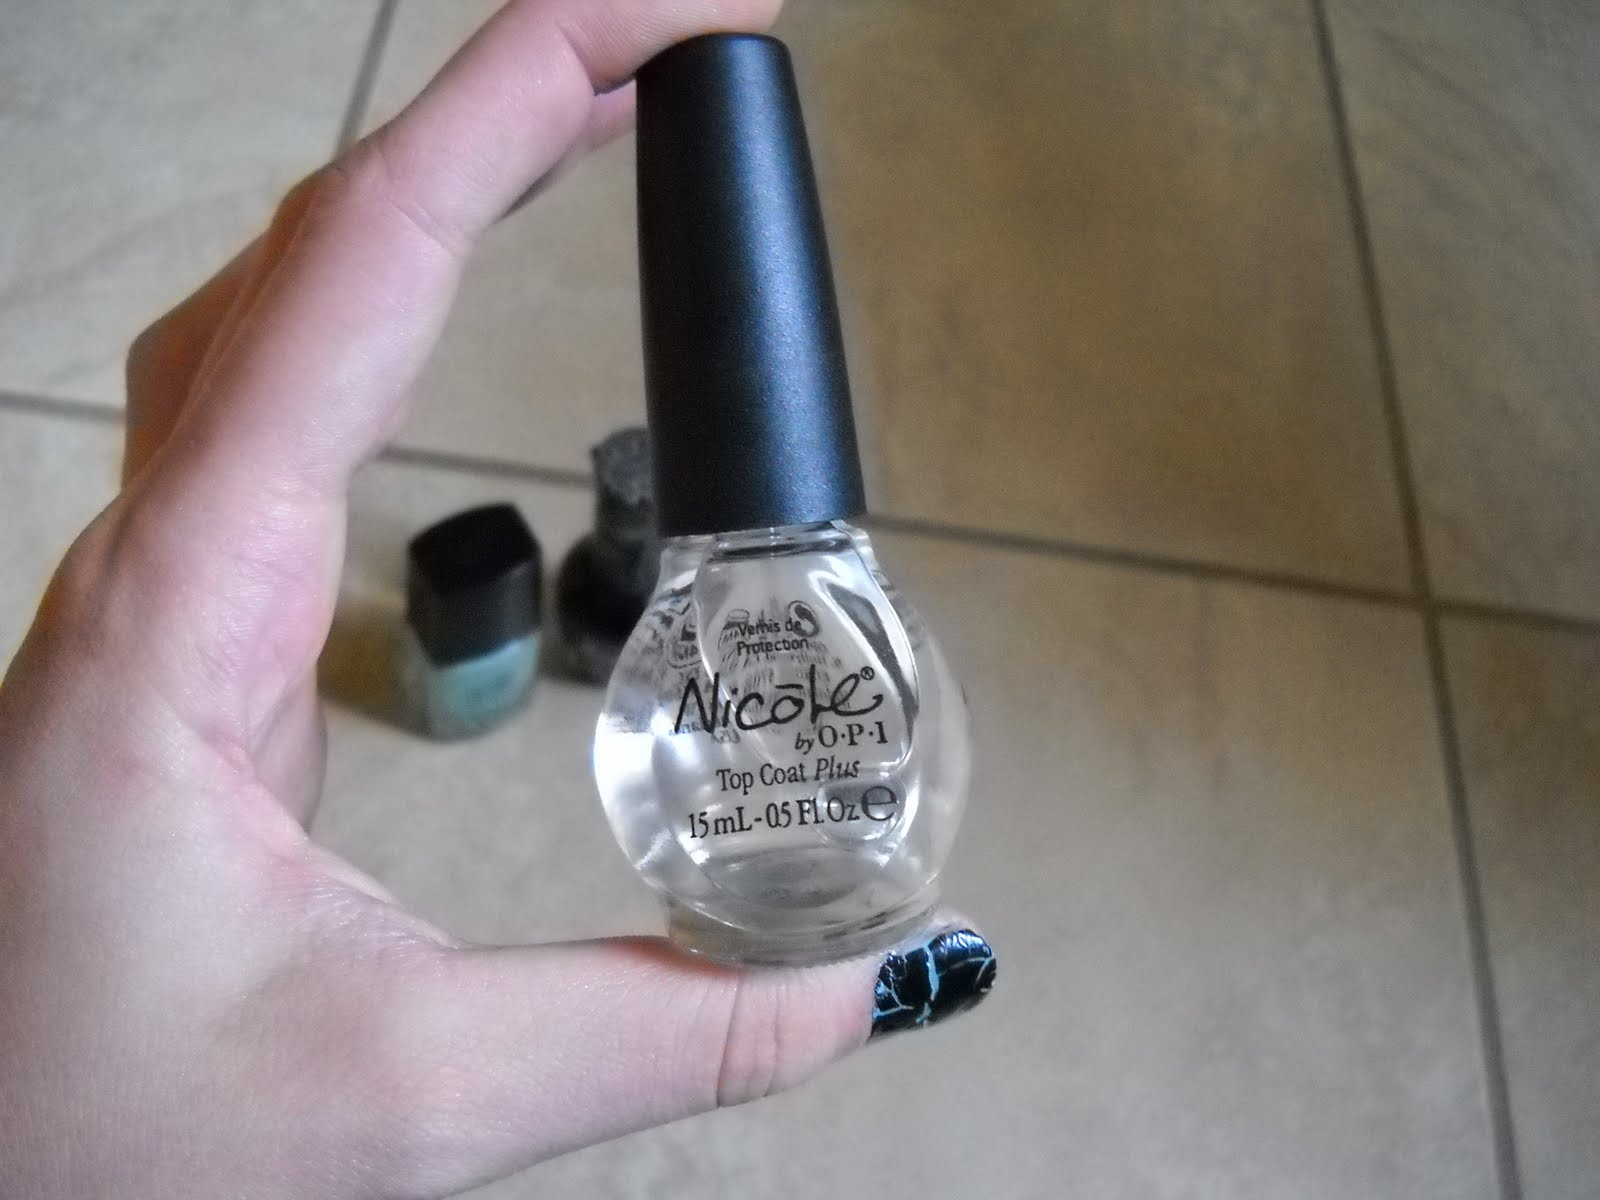 It\'s a girl thing: KLEANCOLOR Crack nail polish *A review*